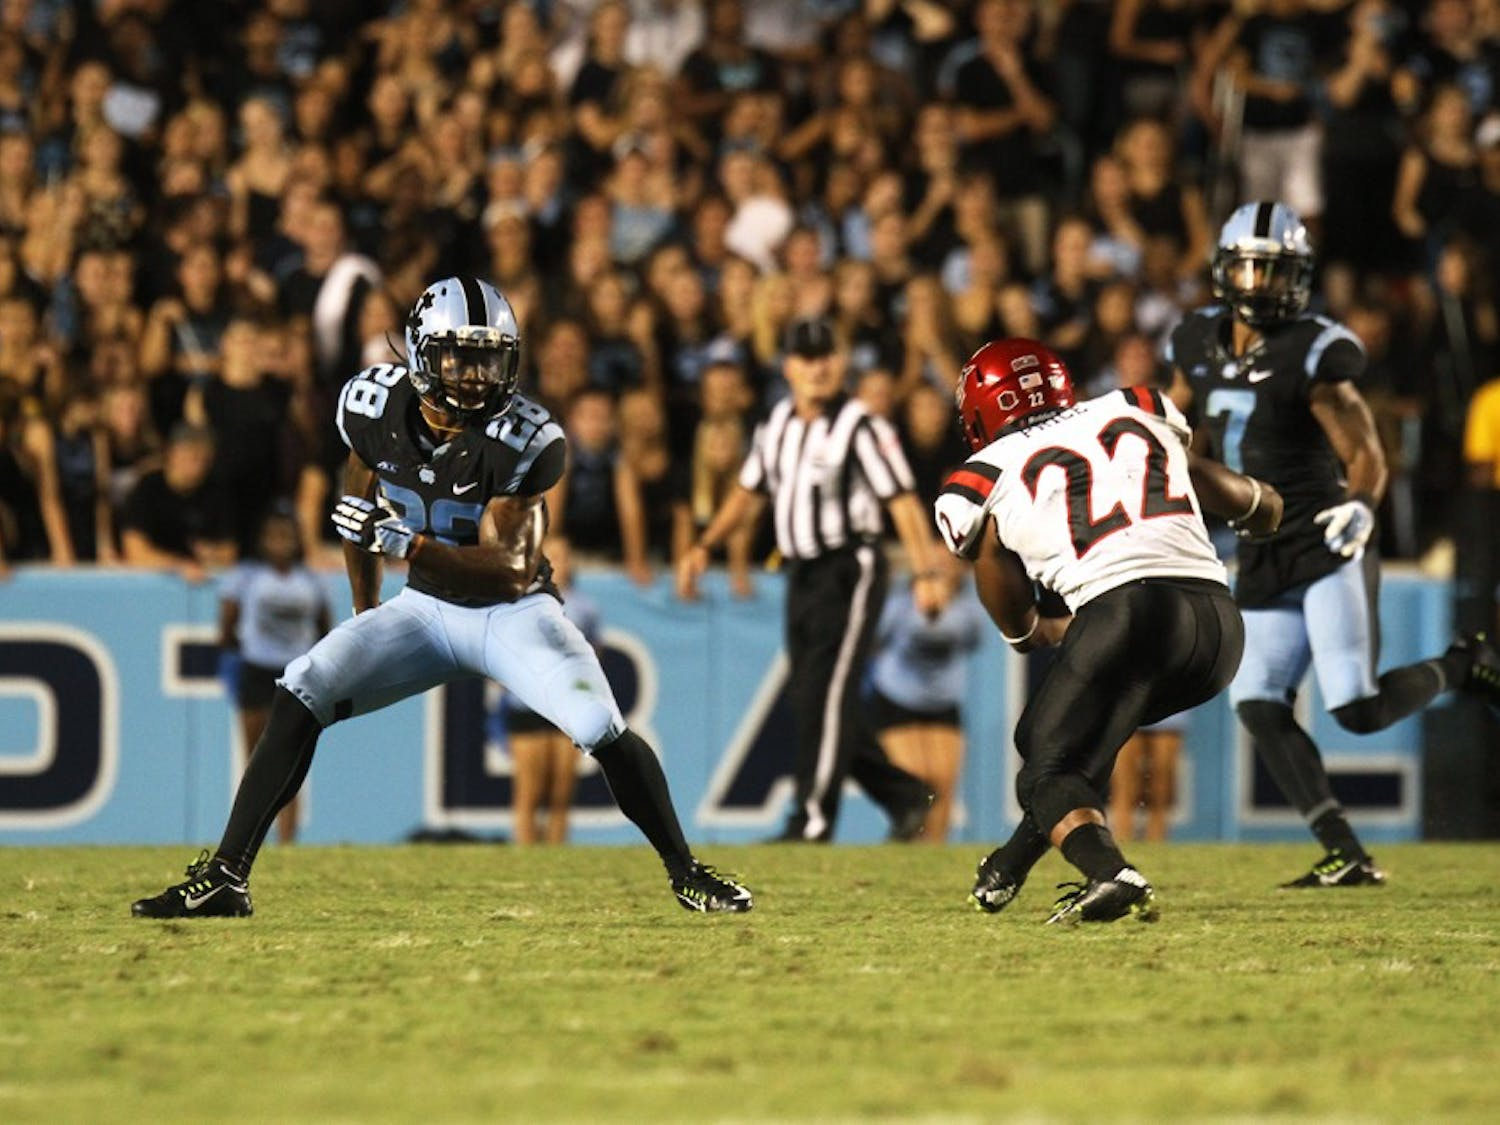 UNC cornerback Brian Walker (28) defends San Diego State's Kalan Montgomery (22).  Walker would go on to make the game saving interception late in the game.